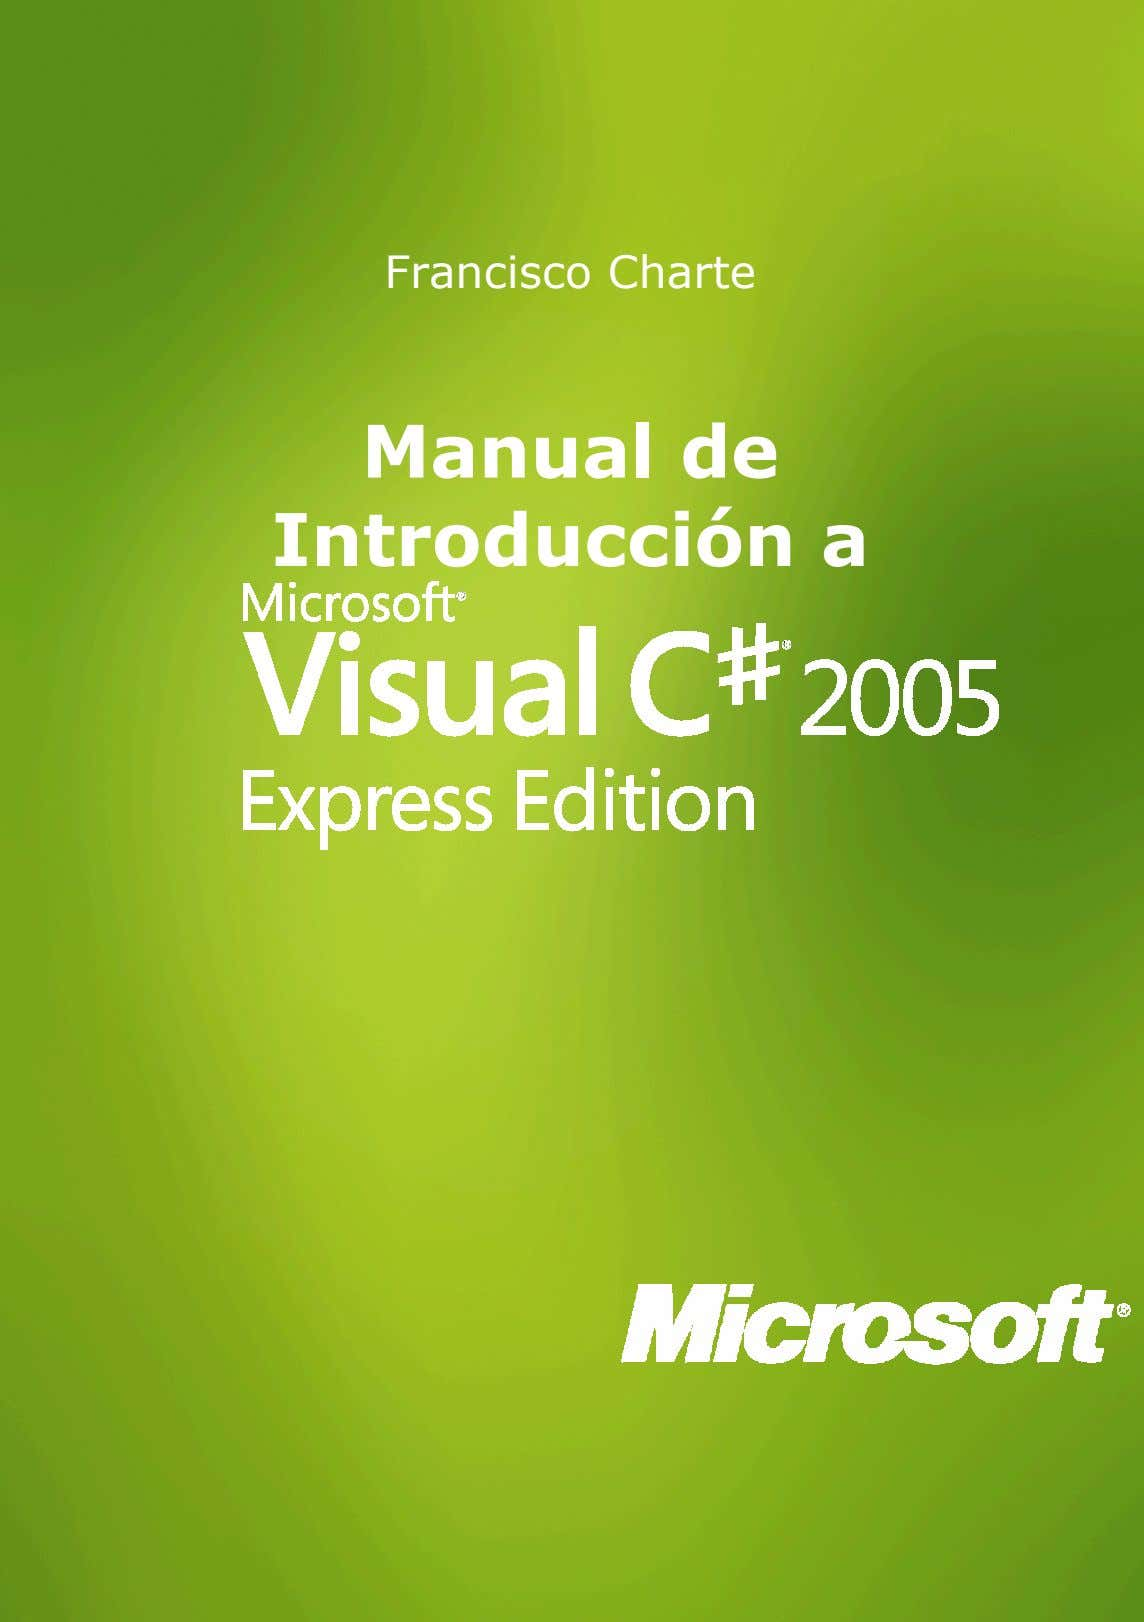 Francisco Charte Manual de Introducción a 1